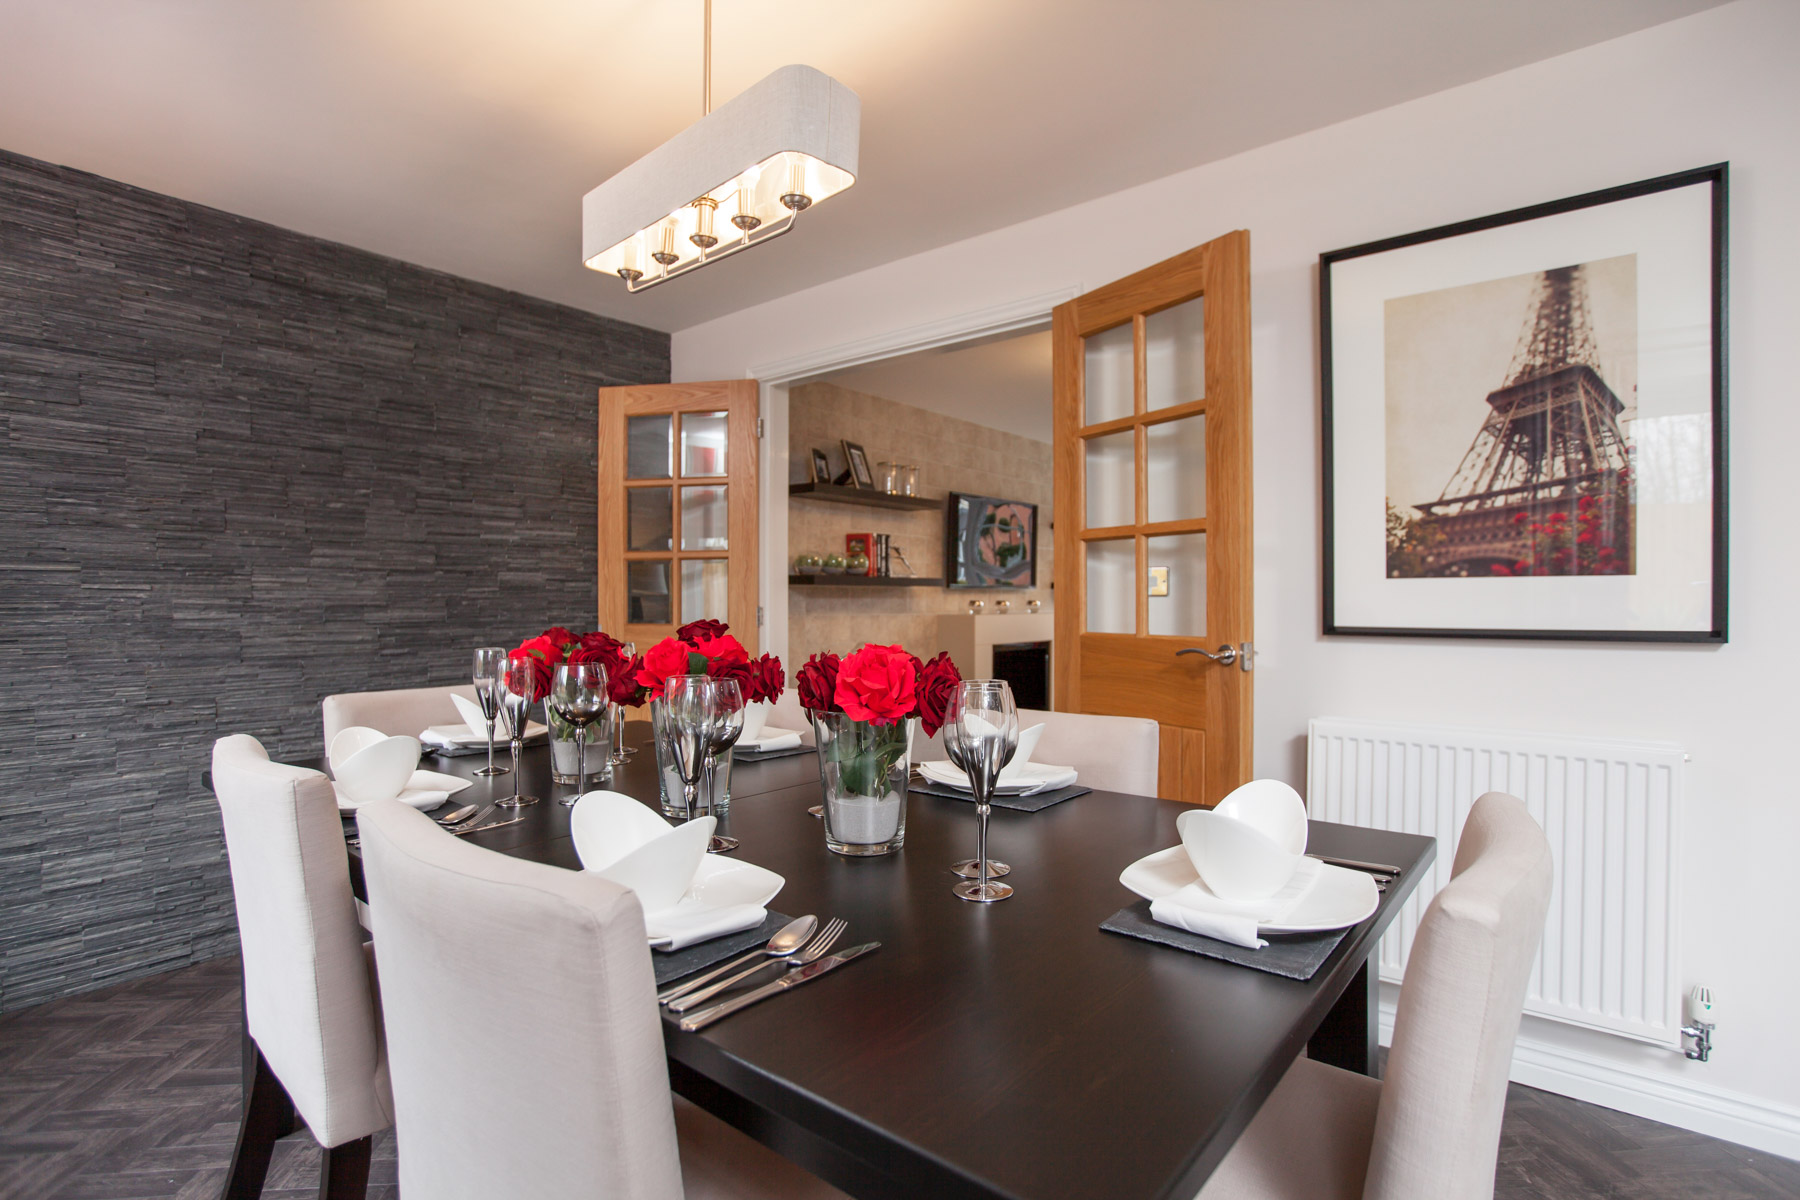 012_SG_Downham_Dining_Room